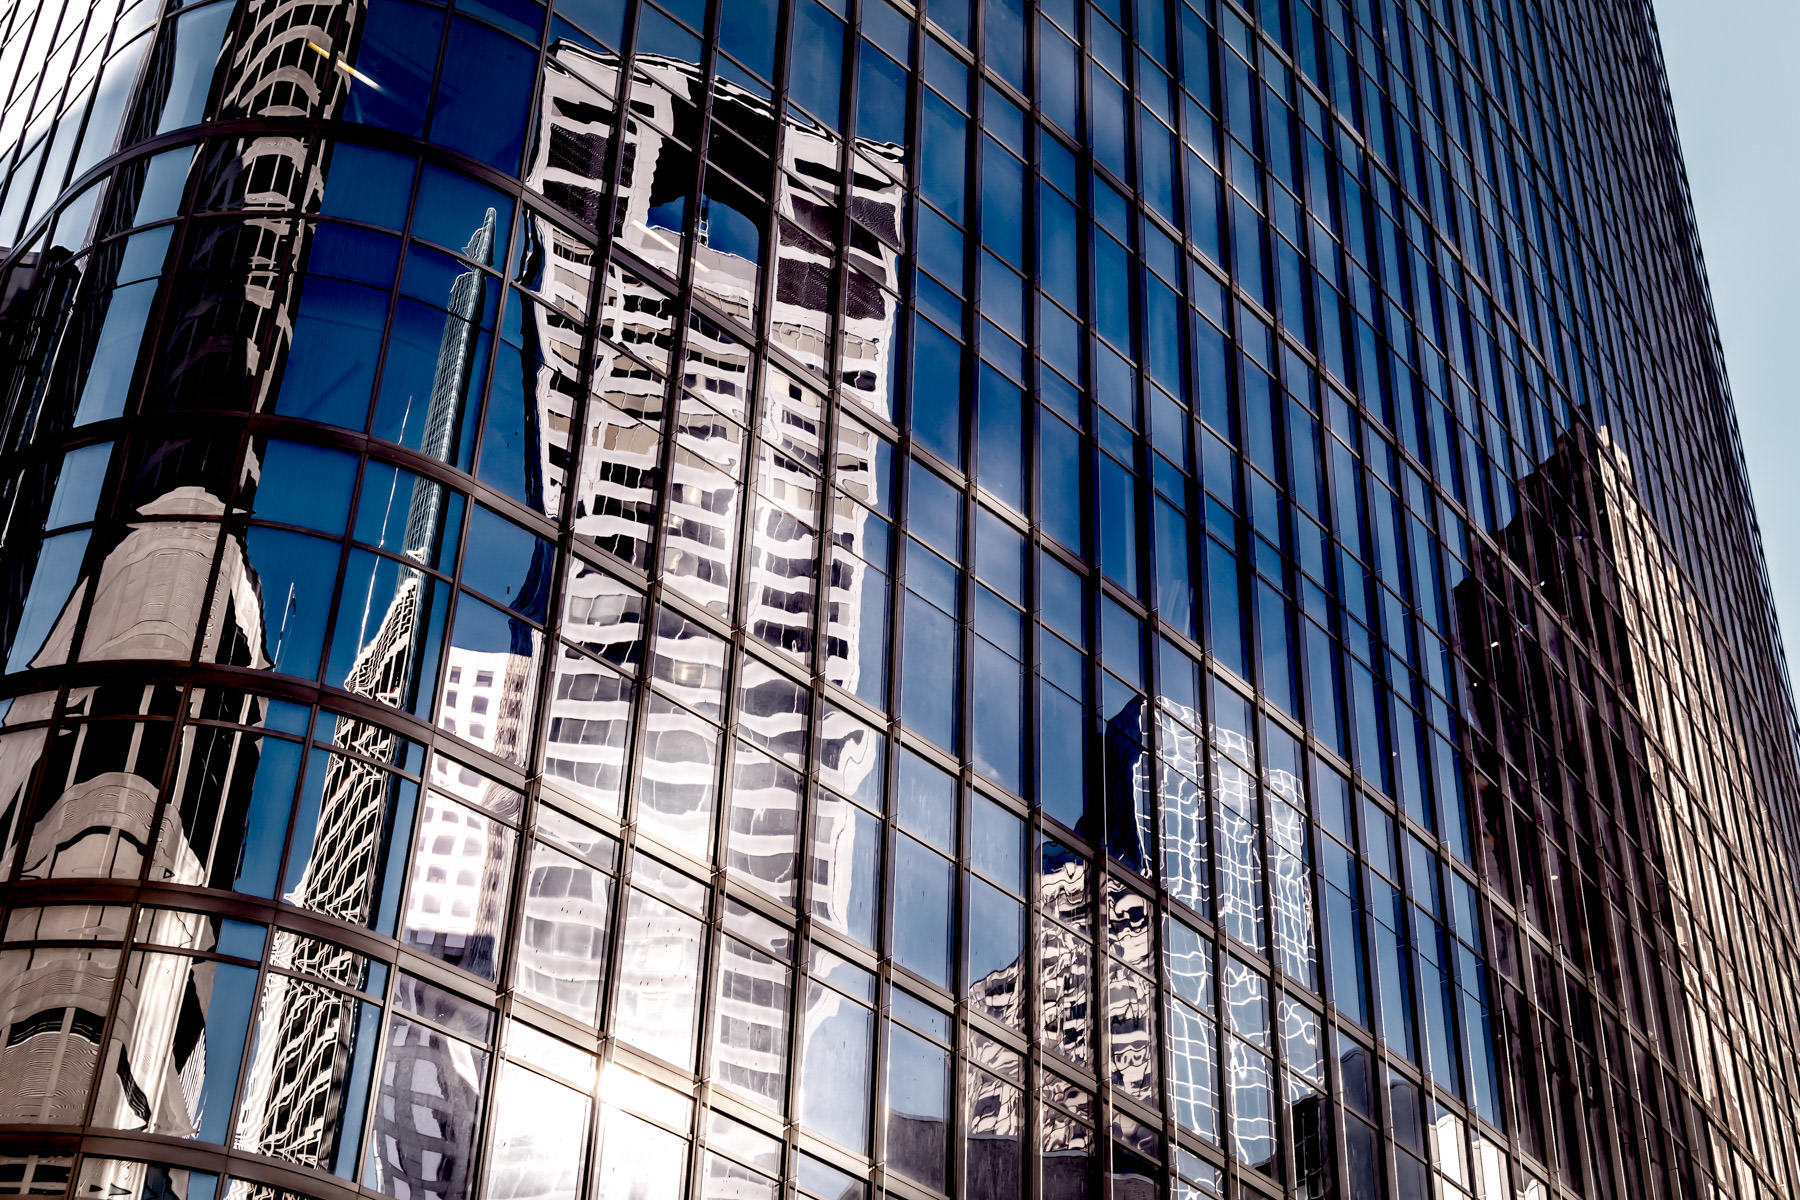 Adjacent skyscrapers are reflected in the glass facade of 1111 Travis Street in Downtown Houston.